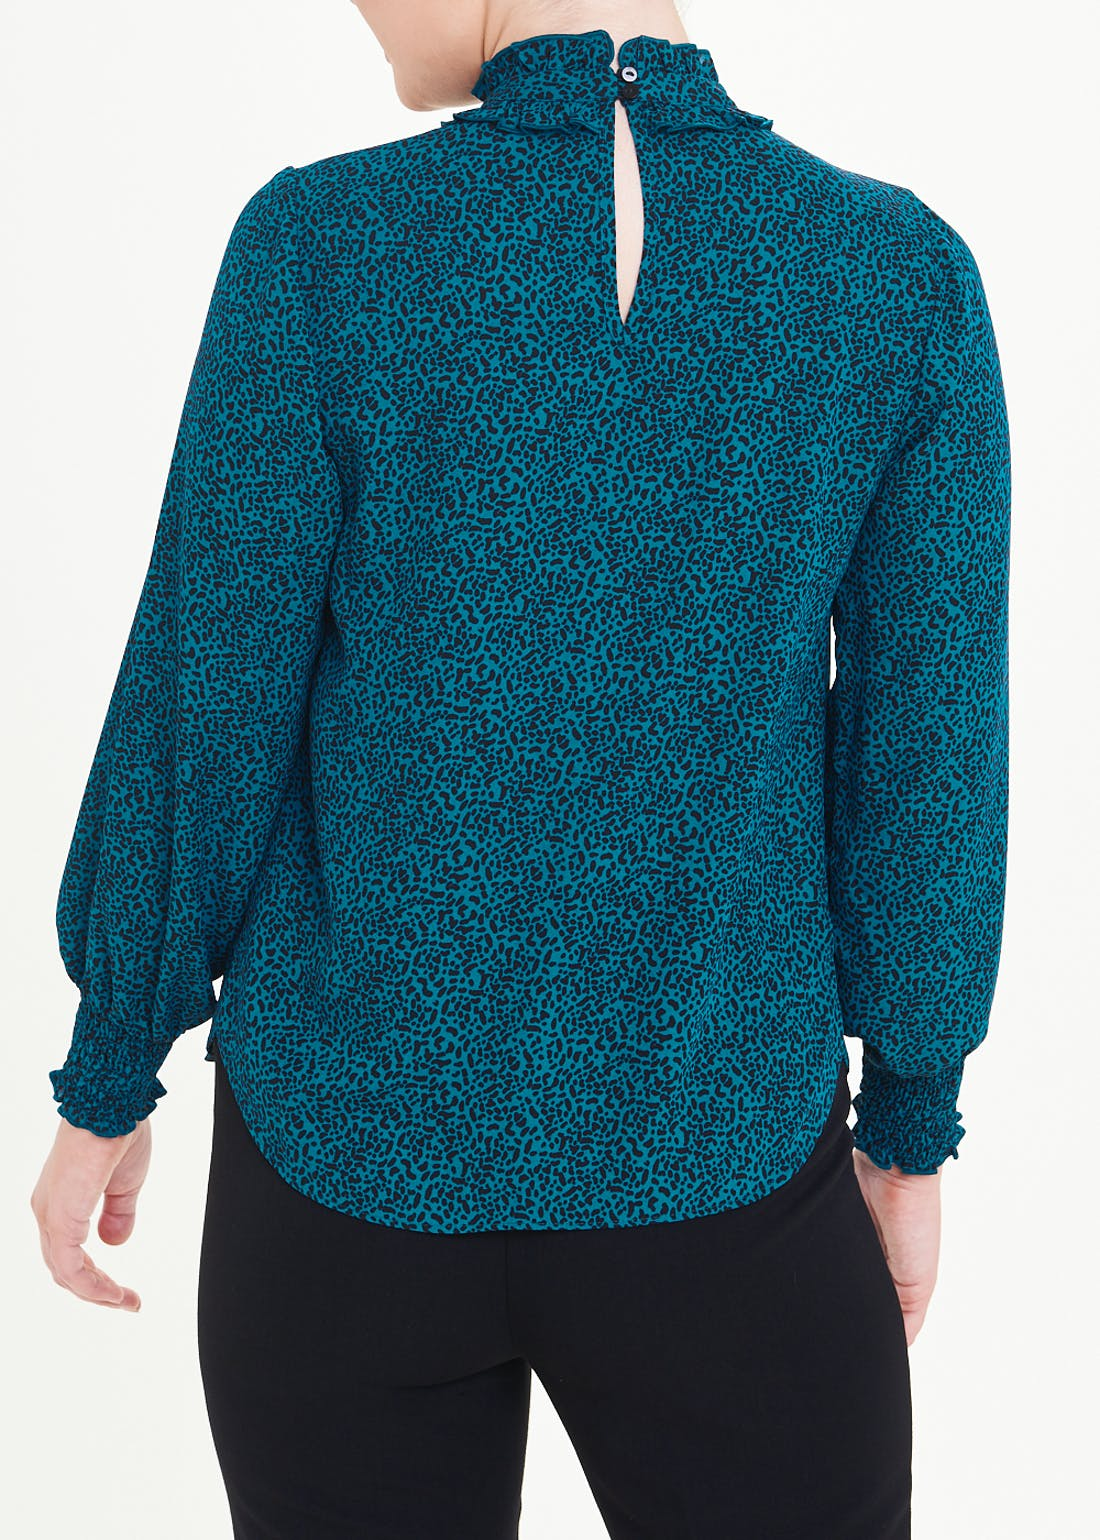 Teal Long Sleeve Animal Print High Neck Blouse